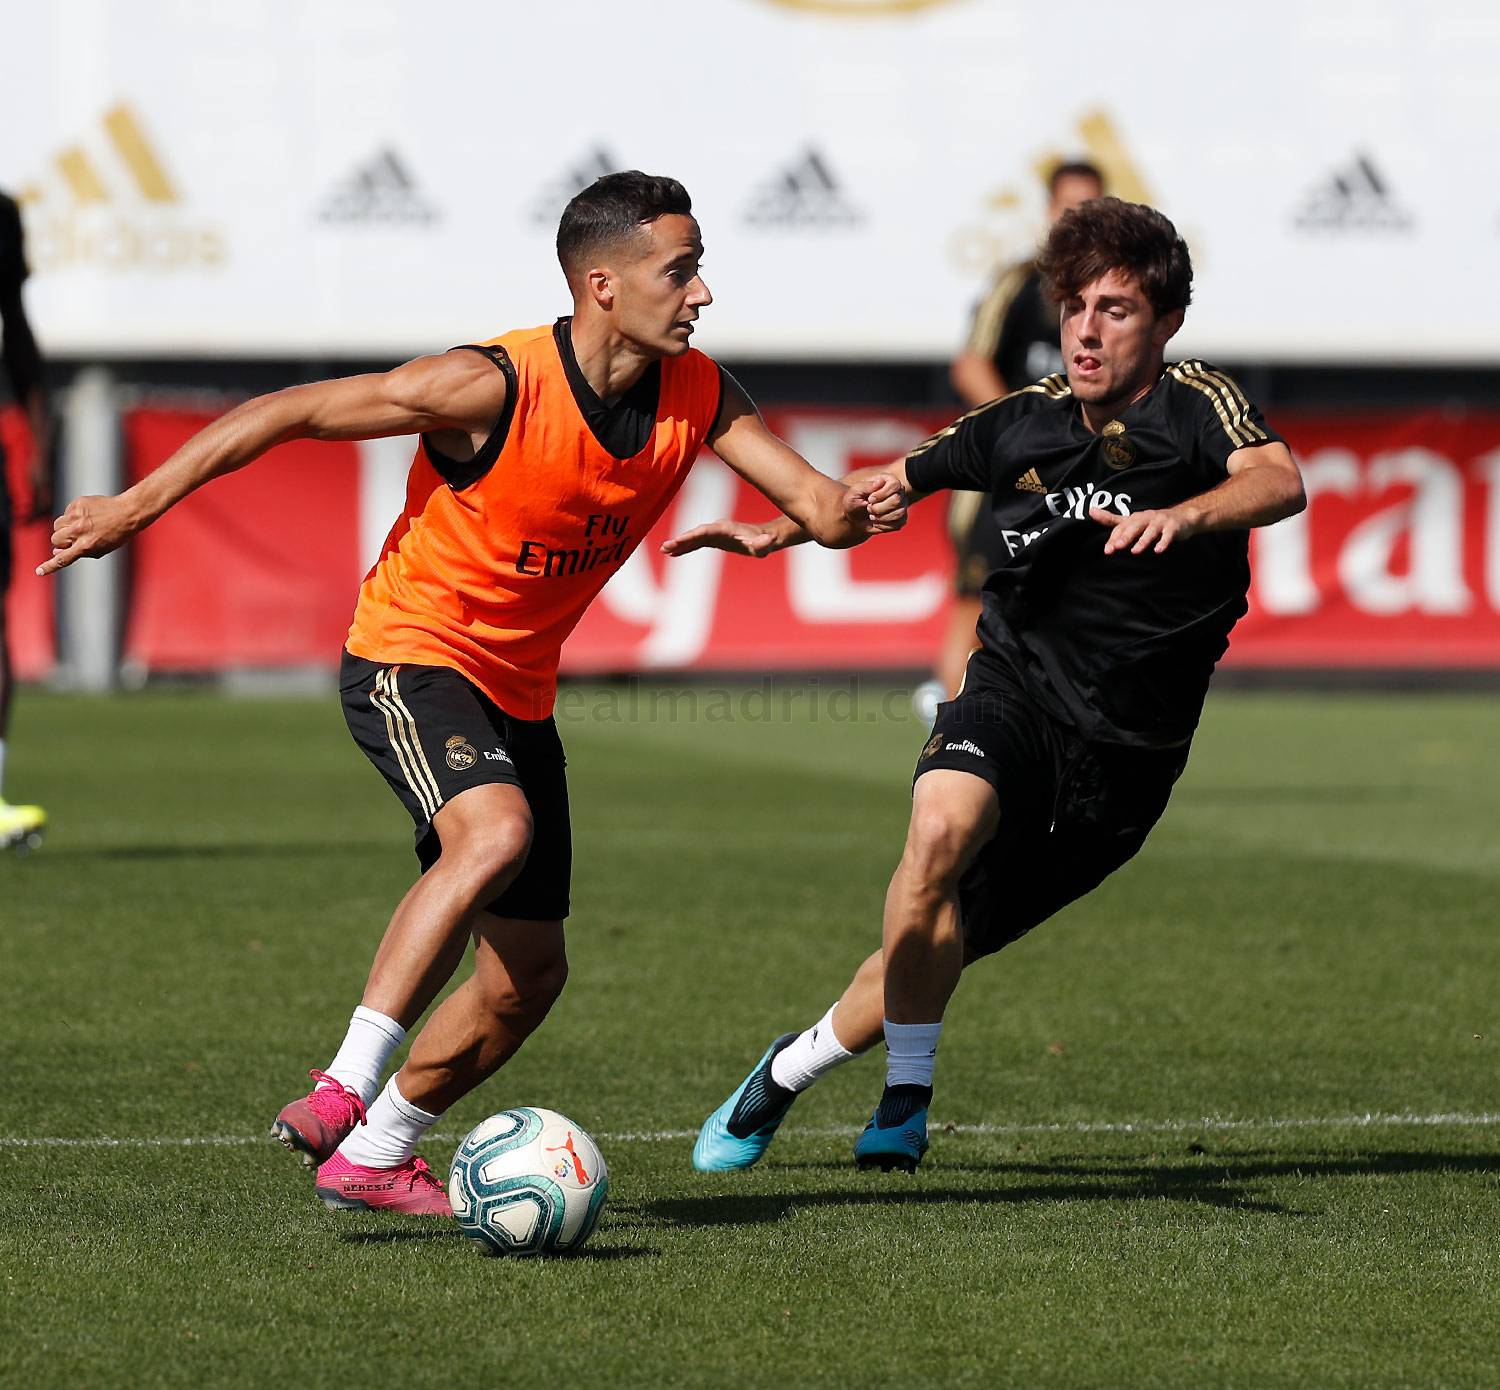 Real Madrid - Entrenamiento del Real Madrid  - 12-09-2019